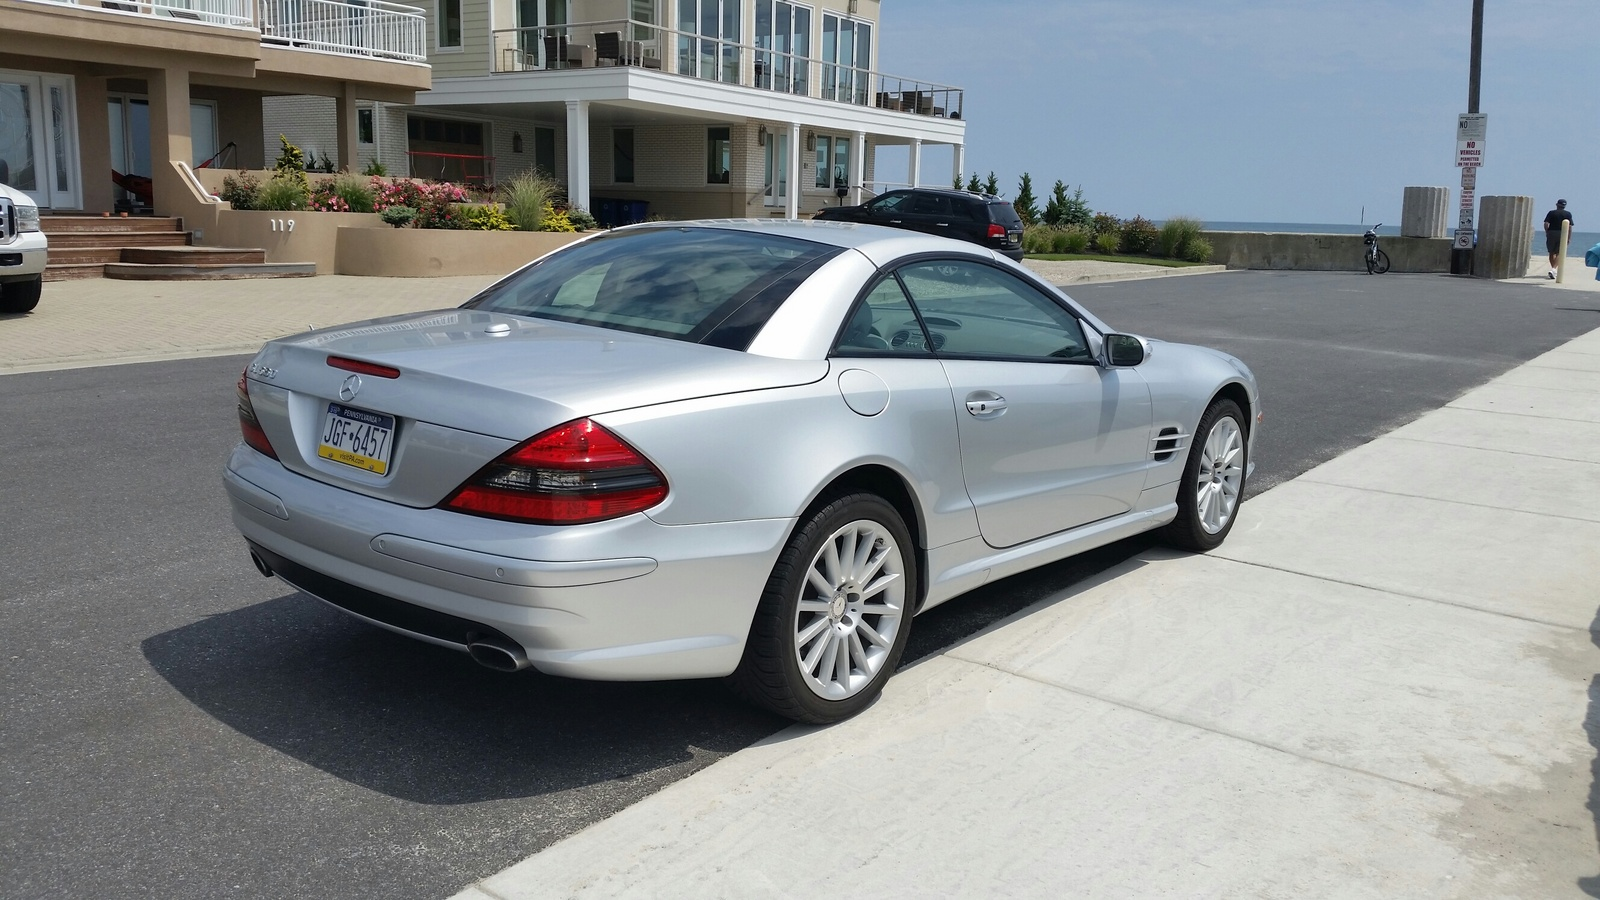 2008 mercedes benz sl class review cargurus for 2008 mercedes benz sl550 for sale